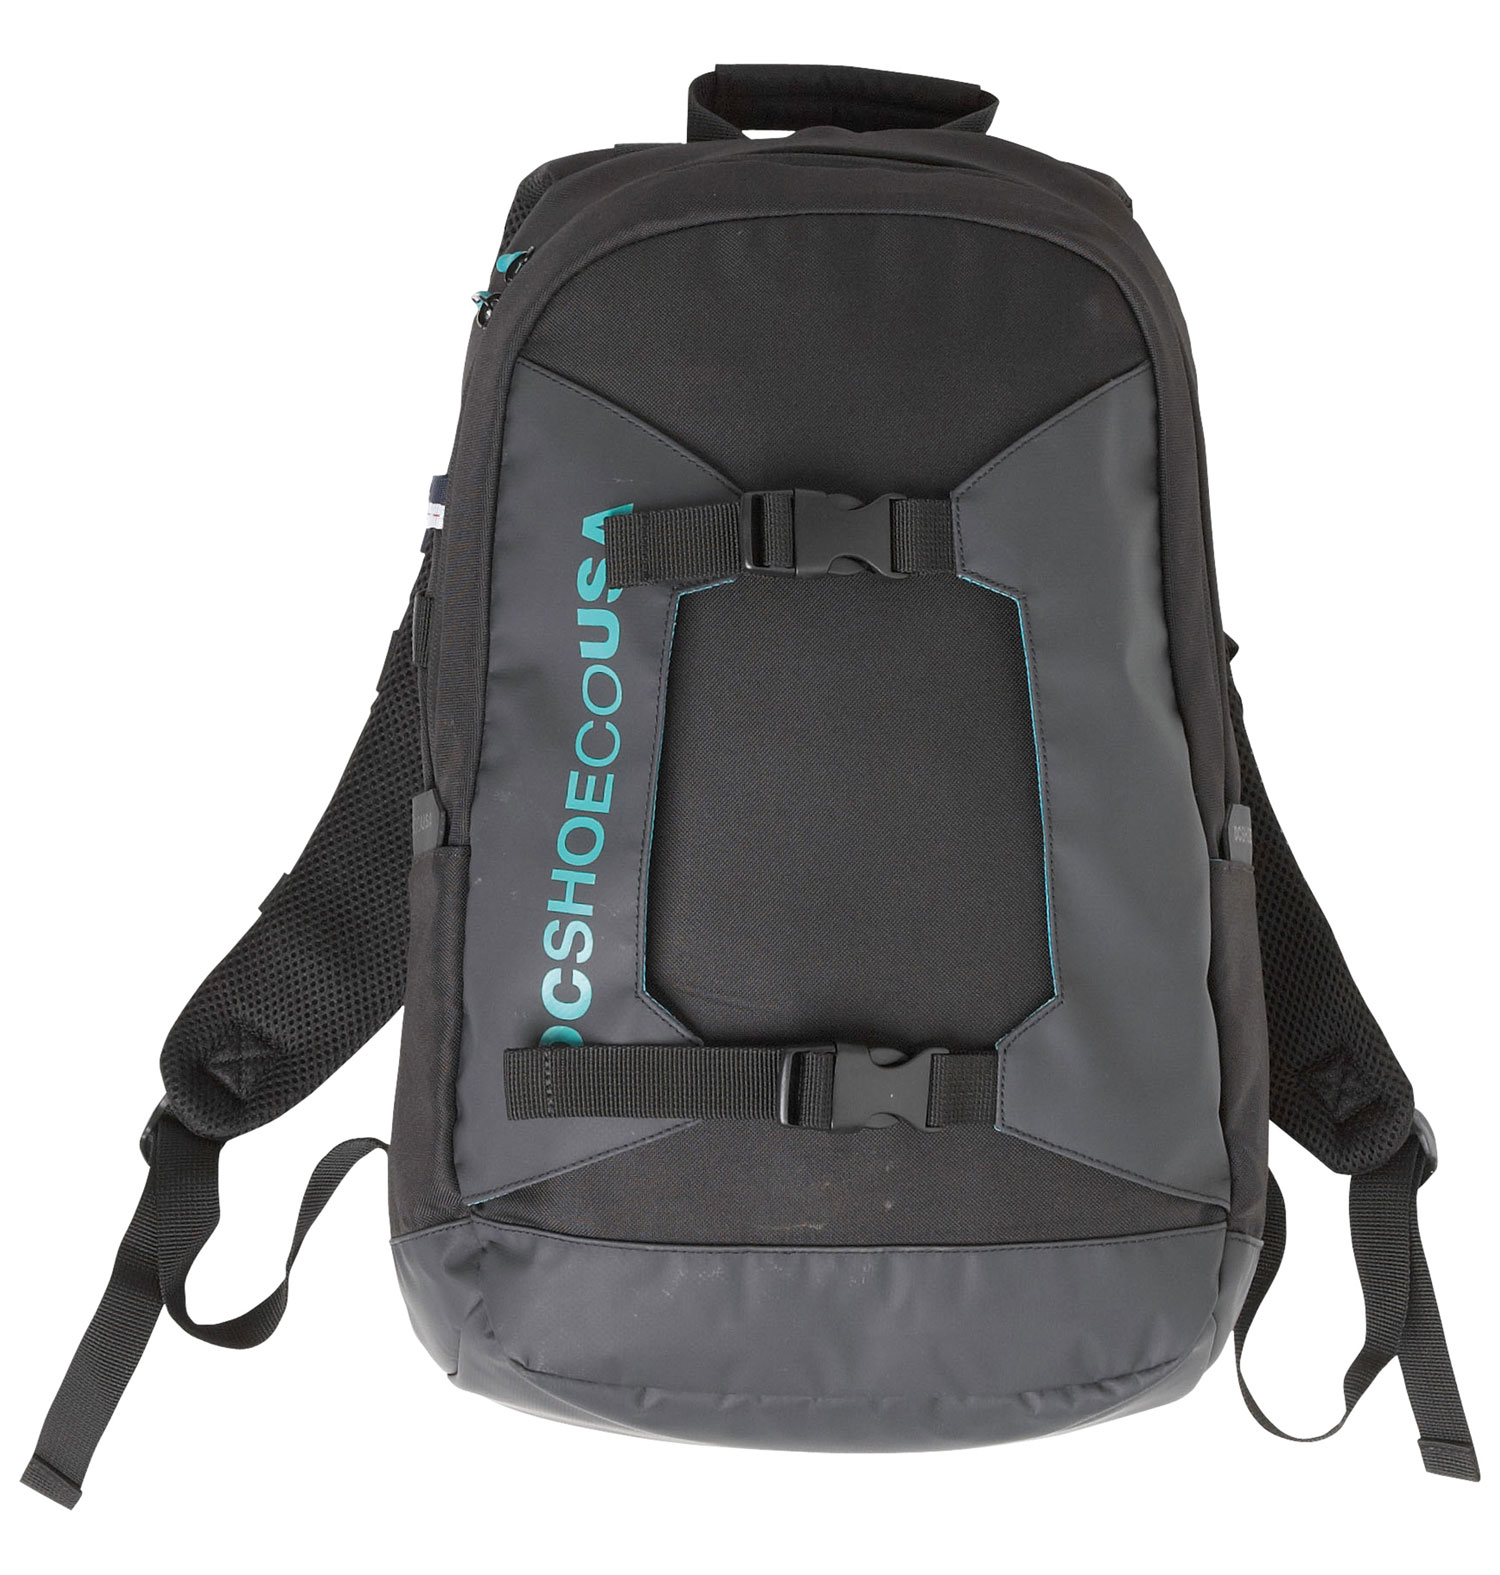 The DC Sender Backpack is great for daily use, school or outdoor adventures. This light weight, heavy duty backpack is made of a 600d polyester shell and a durable 210d polyester inner lining. Ergonomic shoulder straps, molded back panel and waist belt provide comfort, no matter where your adventures take you. The 23.3 liter DC Sender is hydration pack compatible and features handy side slip pockets, a removable key ring and an interior goggle pocket. Perfect for the trail, hiking or skiing.Key Features of the DC Sender Backpack:  600d polyester shell fabric  210d polyester interior fabric  Ergonomic molded back panel  Vertical board carry system  Internal hydration pocket  Cohart  Interior goggle pocket   Padded kidney straps  Side slip pockets  Removable key ring   Liter - 23.3l  Riding pack - $36.95